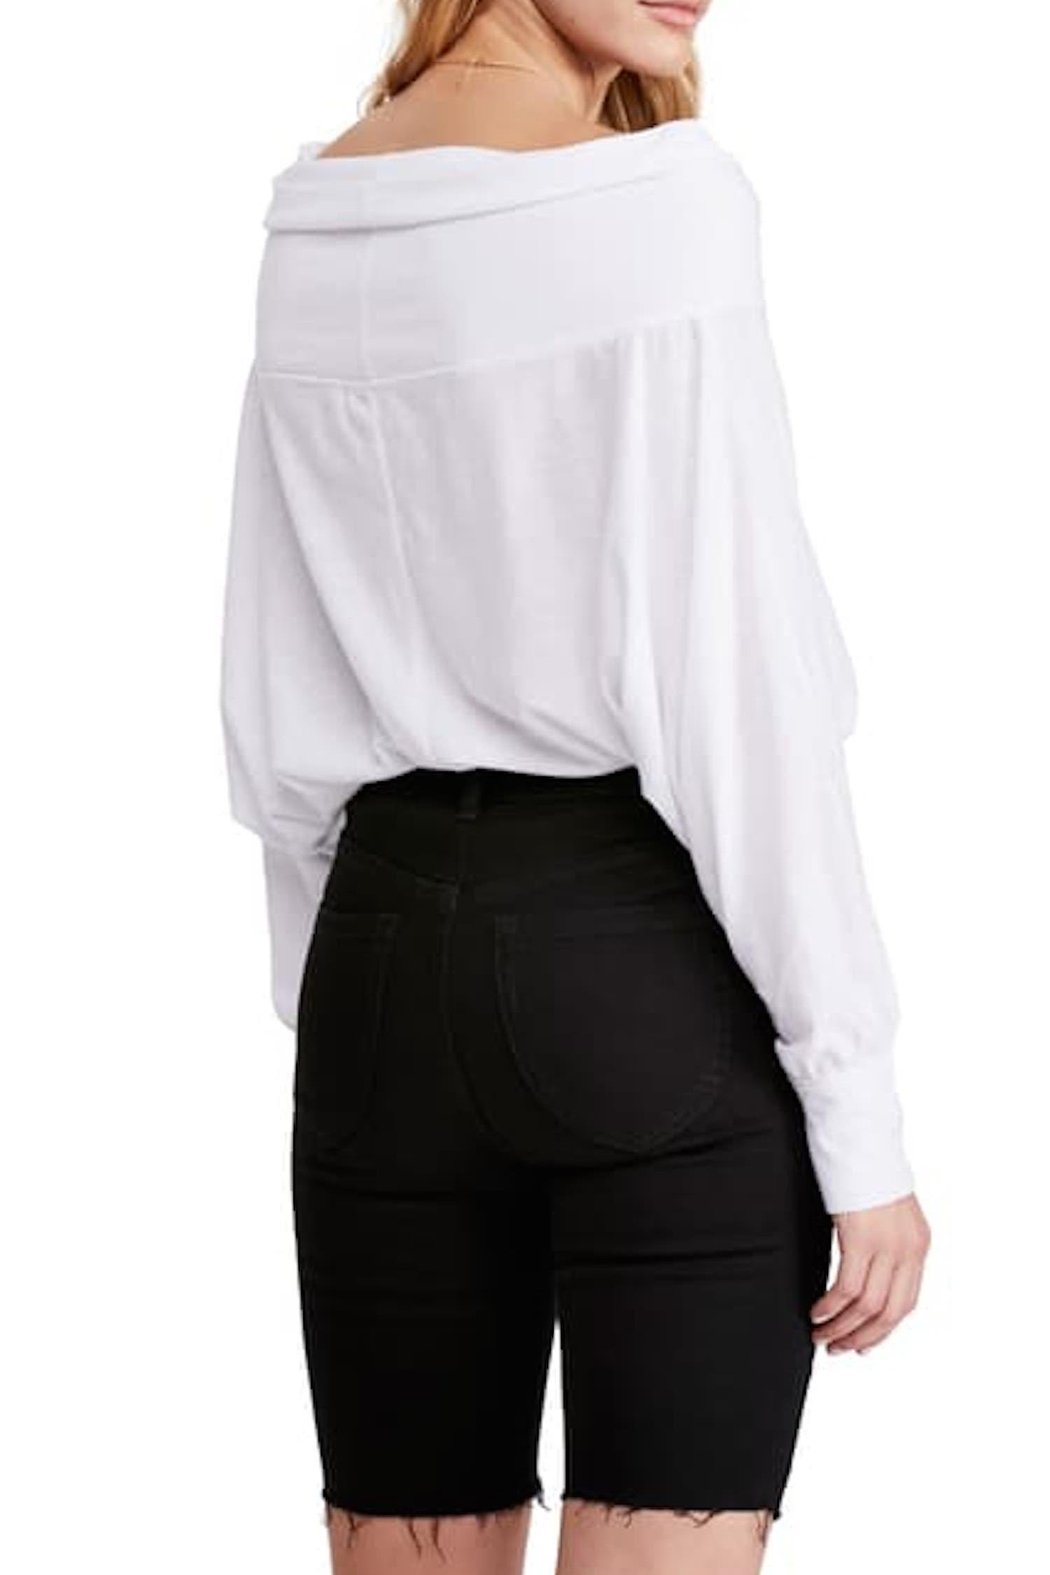 Free People Fp Sequoia Tee - Back Cropped Image